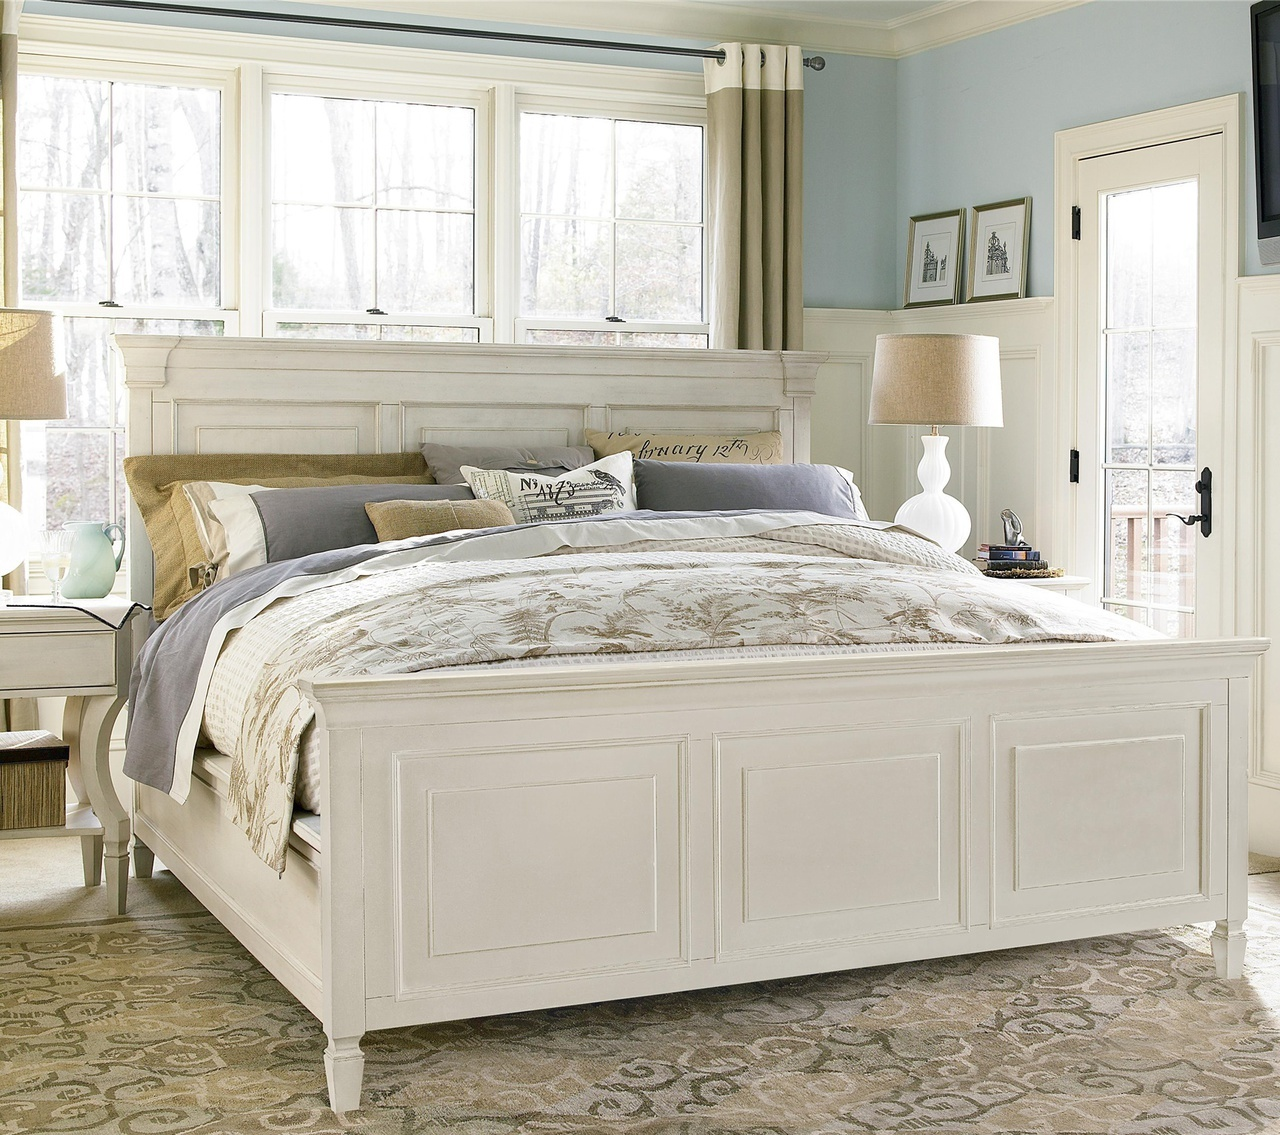 white king size bed frame country-chic white king panel bed frame ... ilpxcud